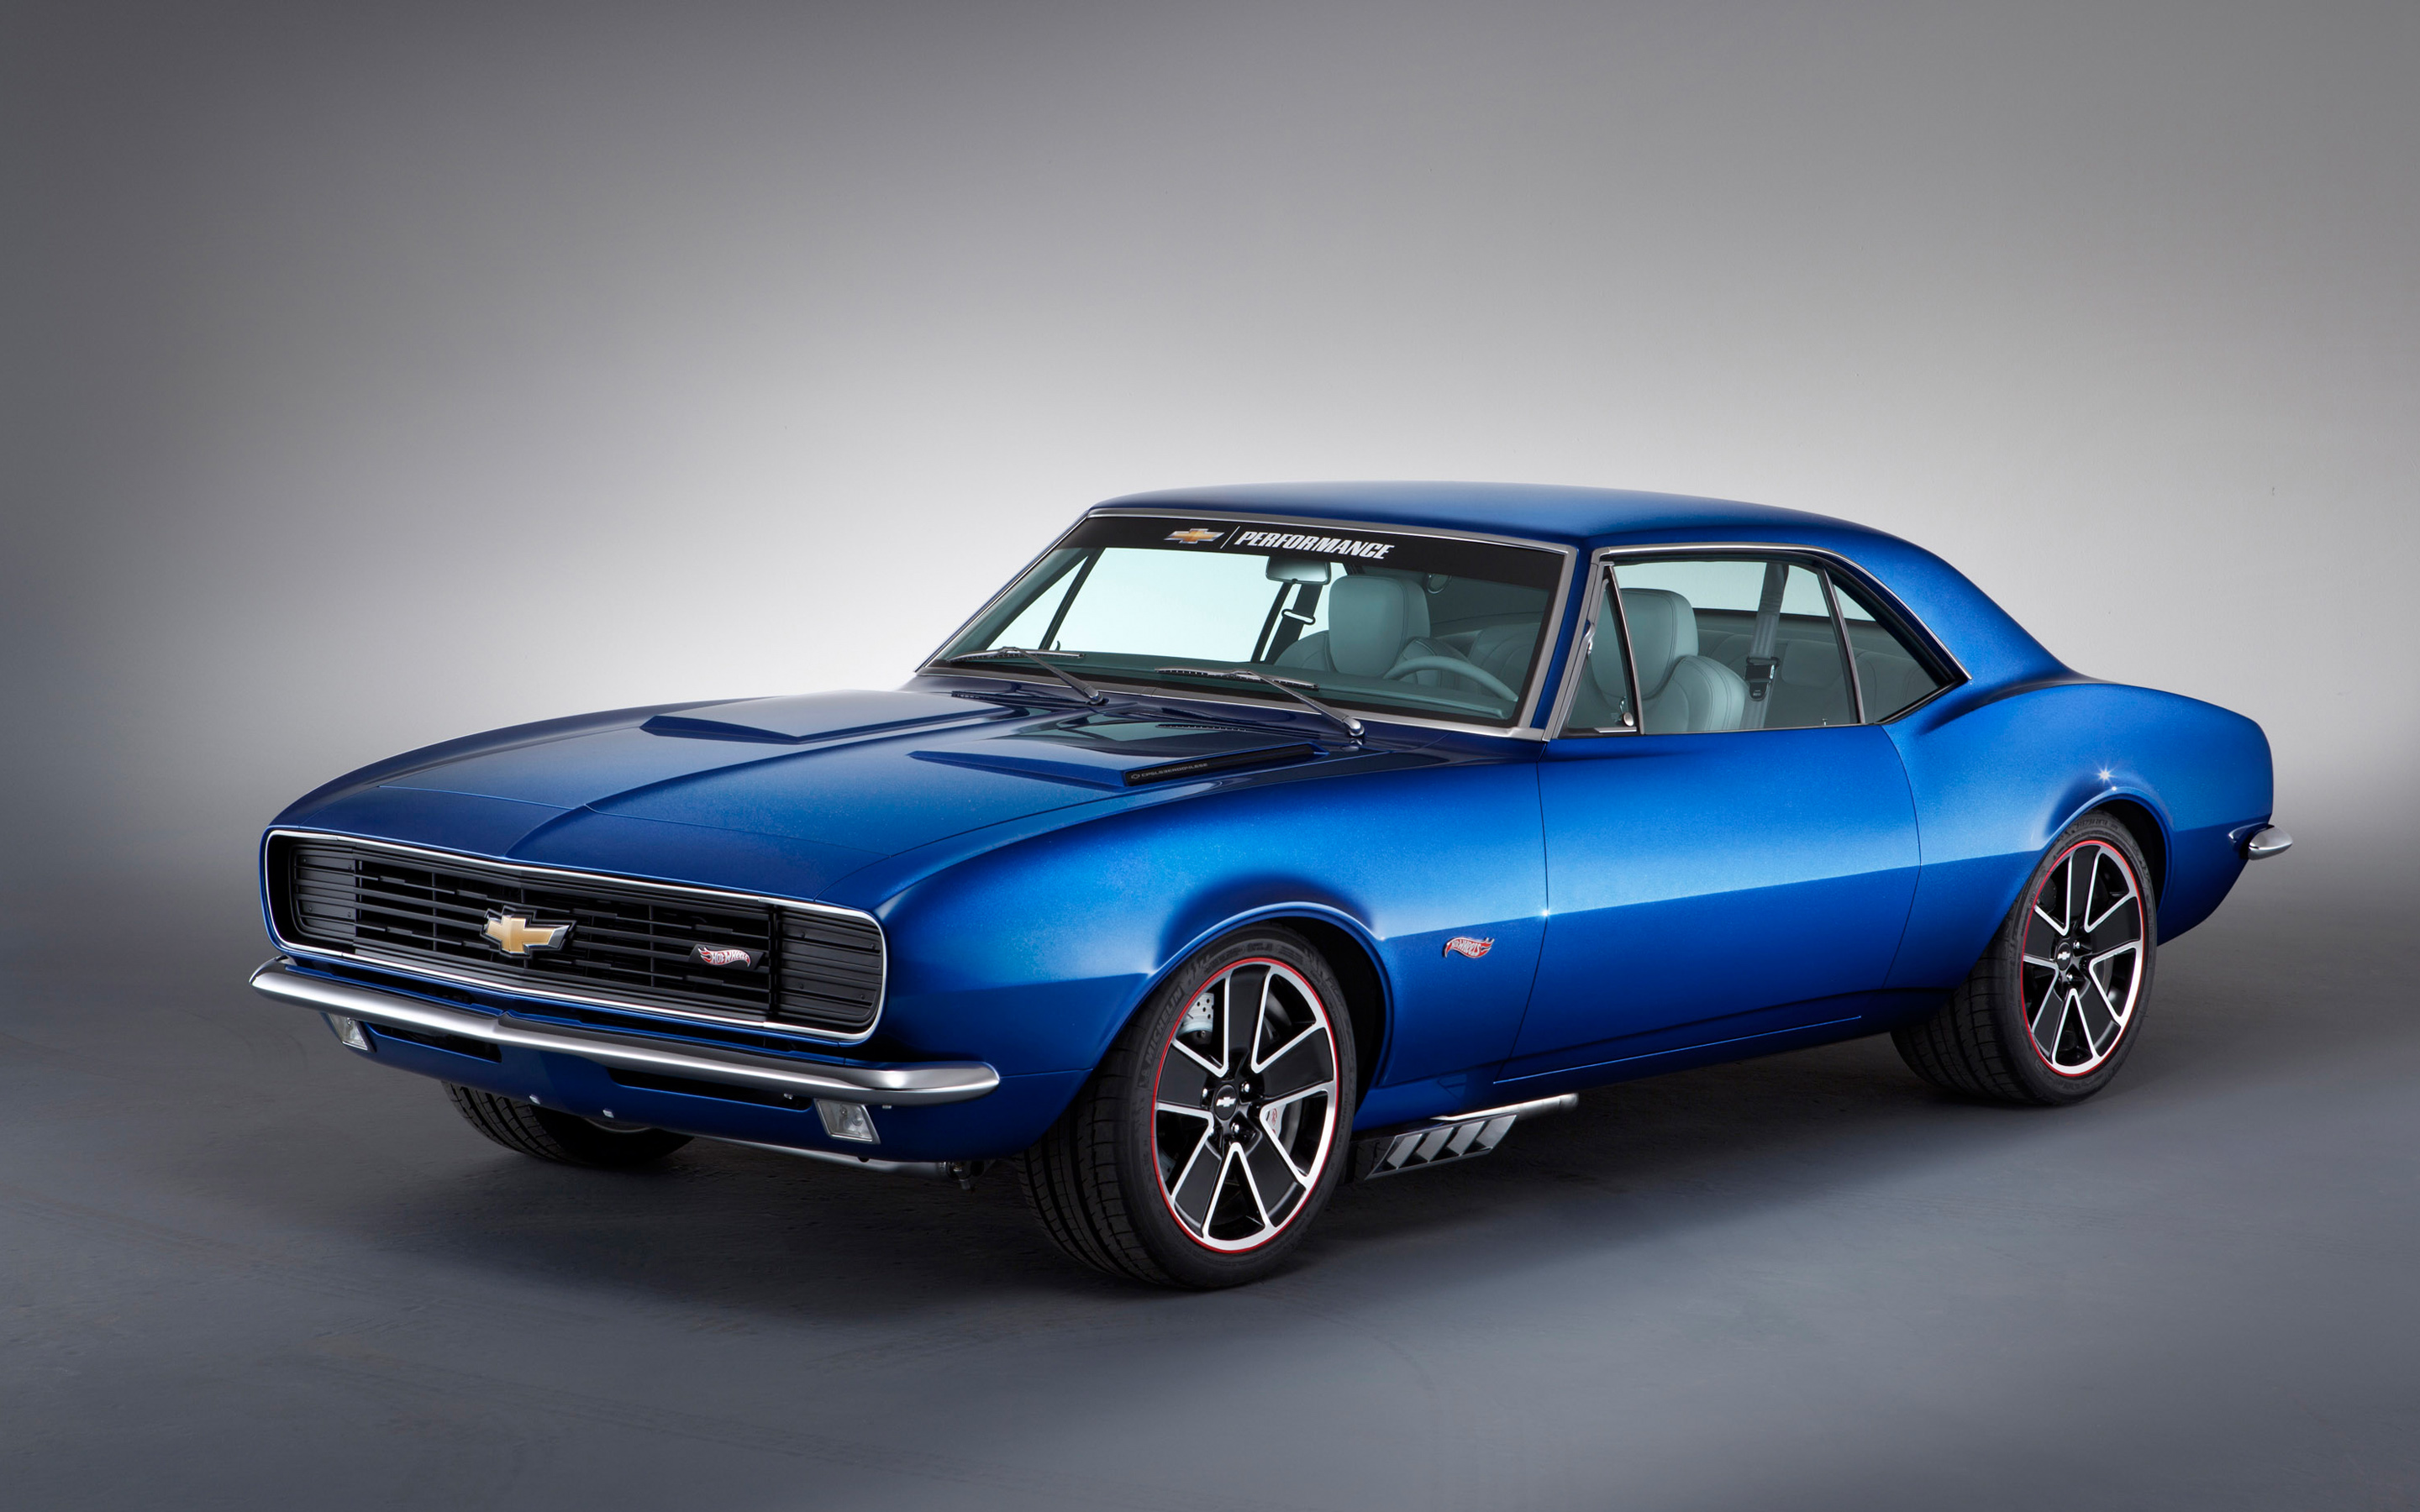 Chevrolet Camaro Hot Wheels 1967 Wallpapers HD Wallpapers 2880x1800